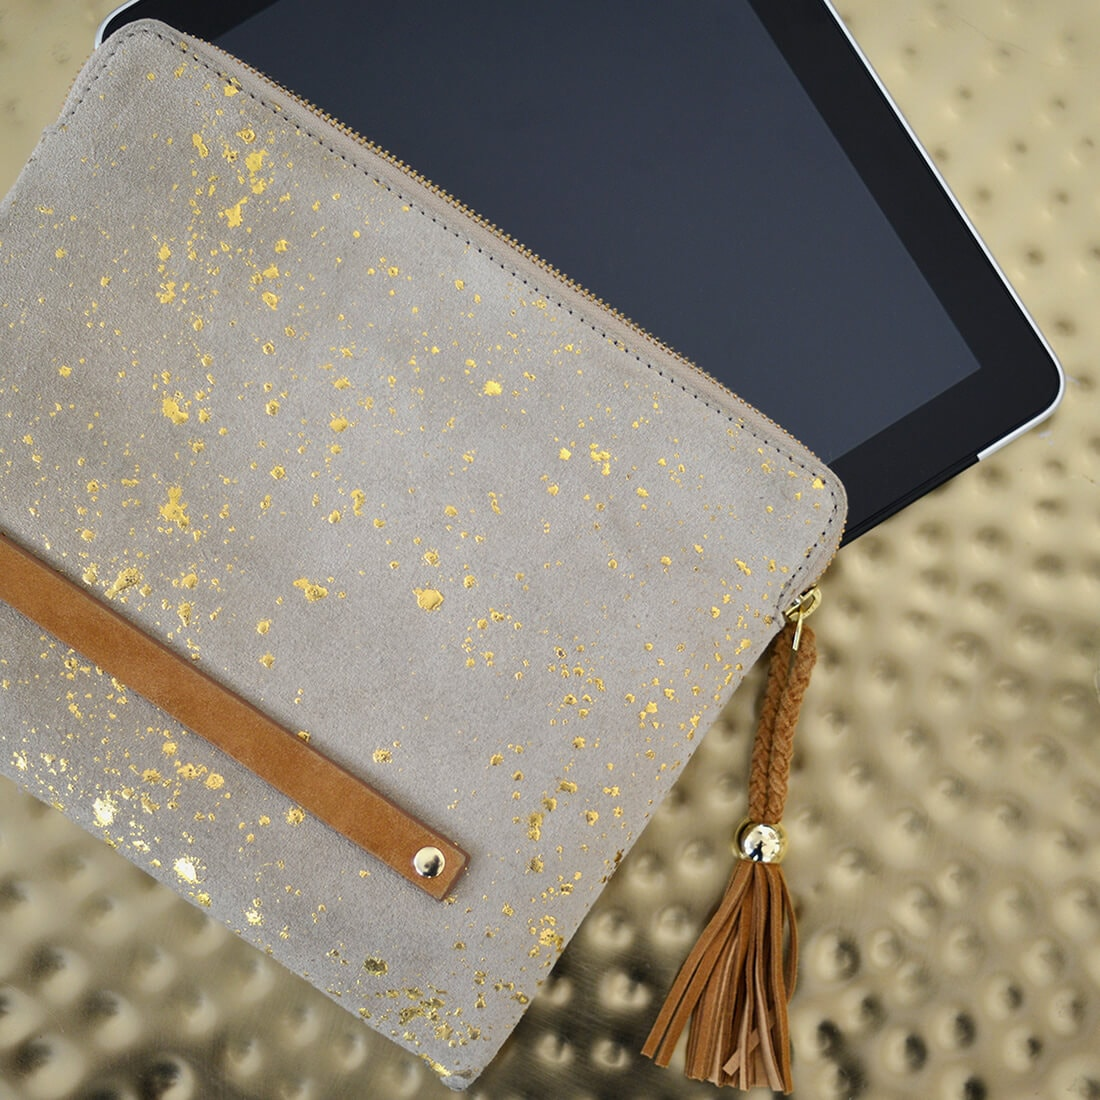 Maradji Suede Leather Clutch OuiPlease OuiShop French Accessories